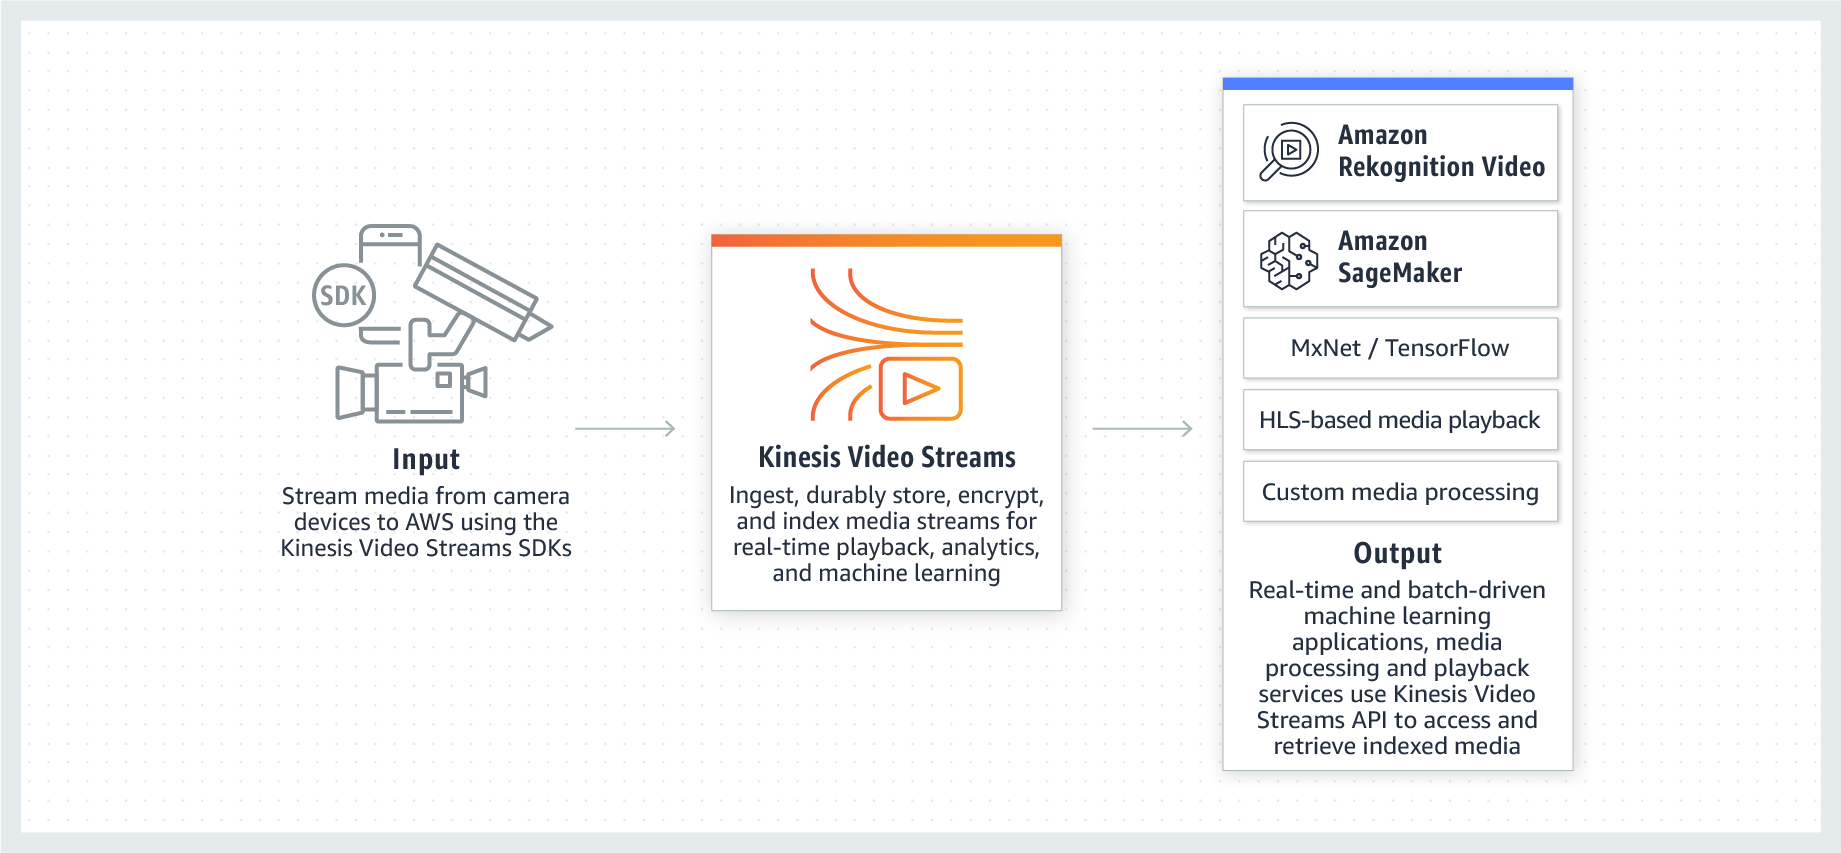 Cómo funciona Amazon Kinesis Video Streams